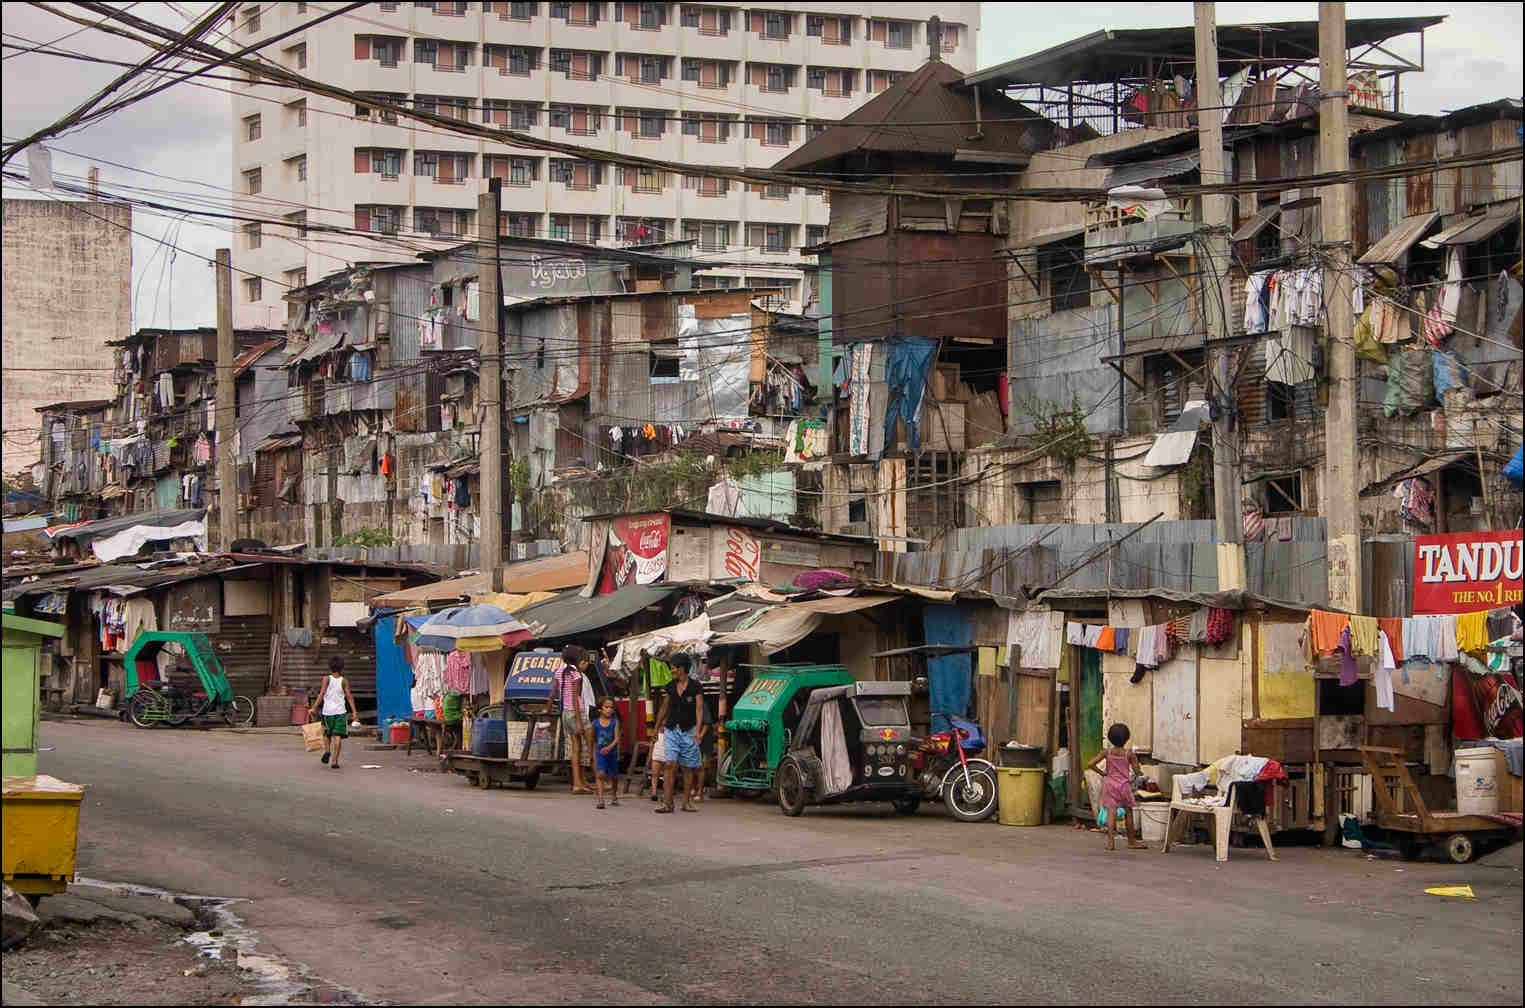 Manila Malate, poor street view